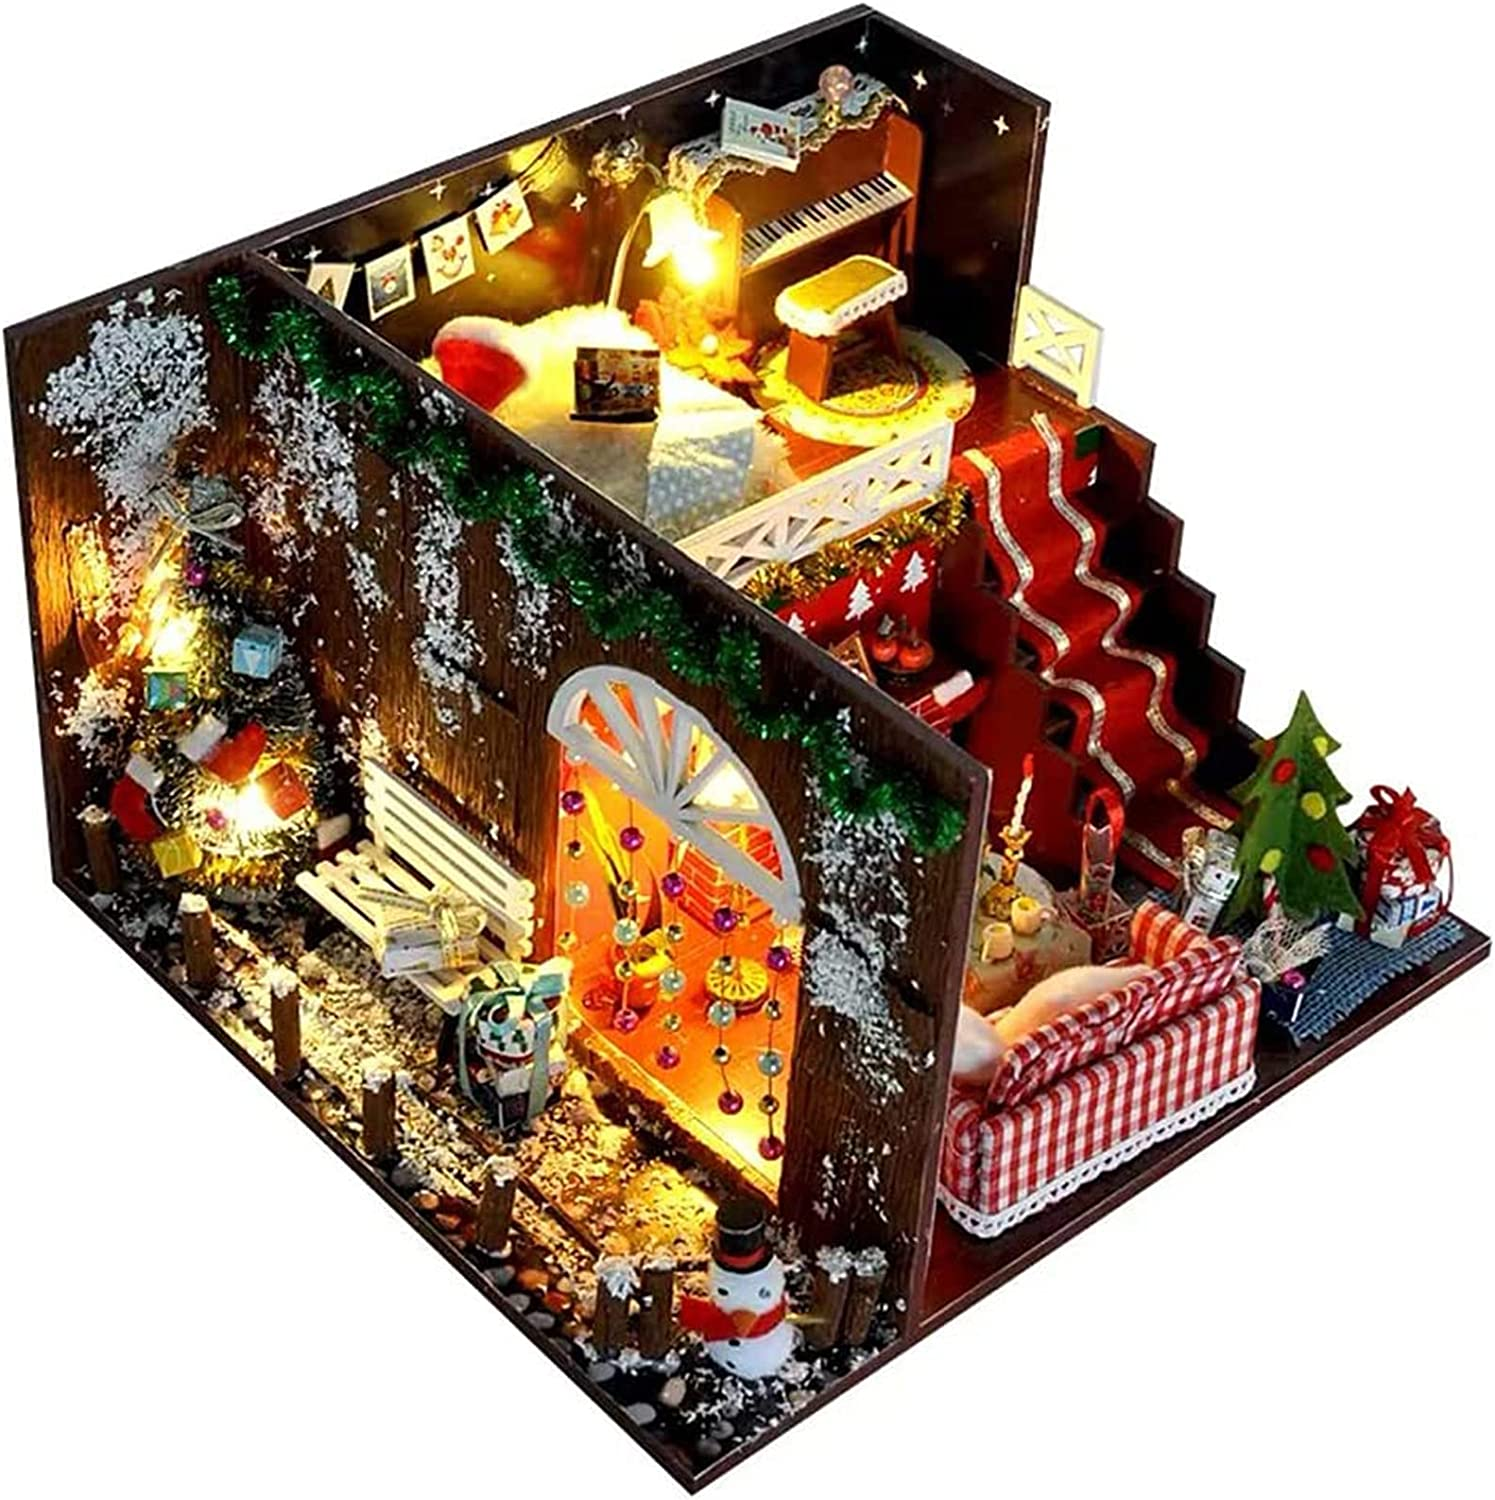 PPQQBB Dollhouse Miniature DIY House lowest price Creative Room Kit Furn with Super intense SALE